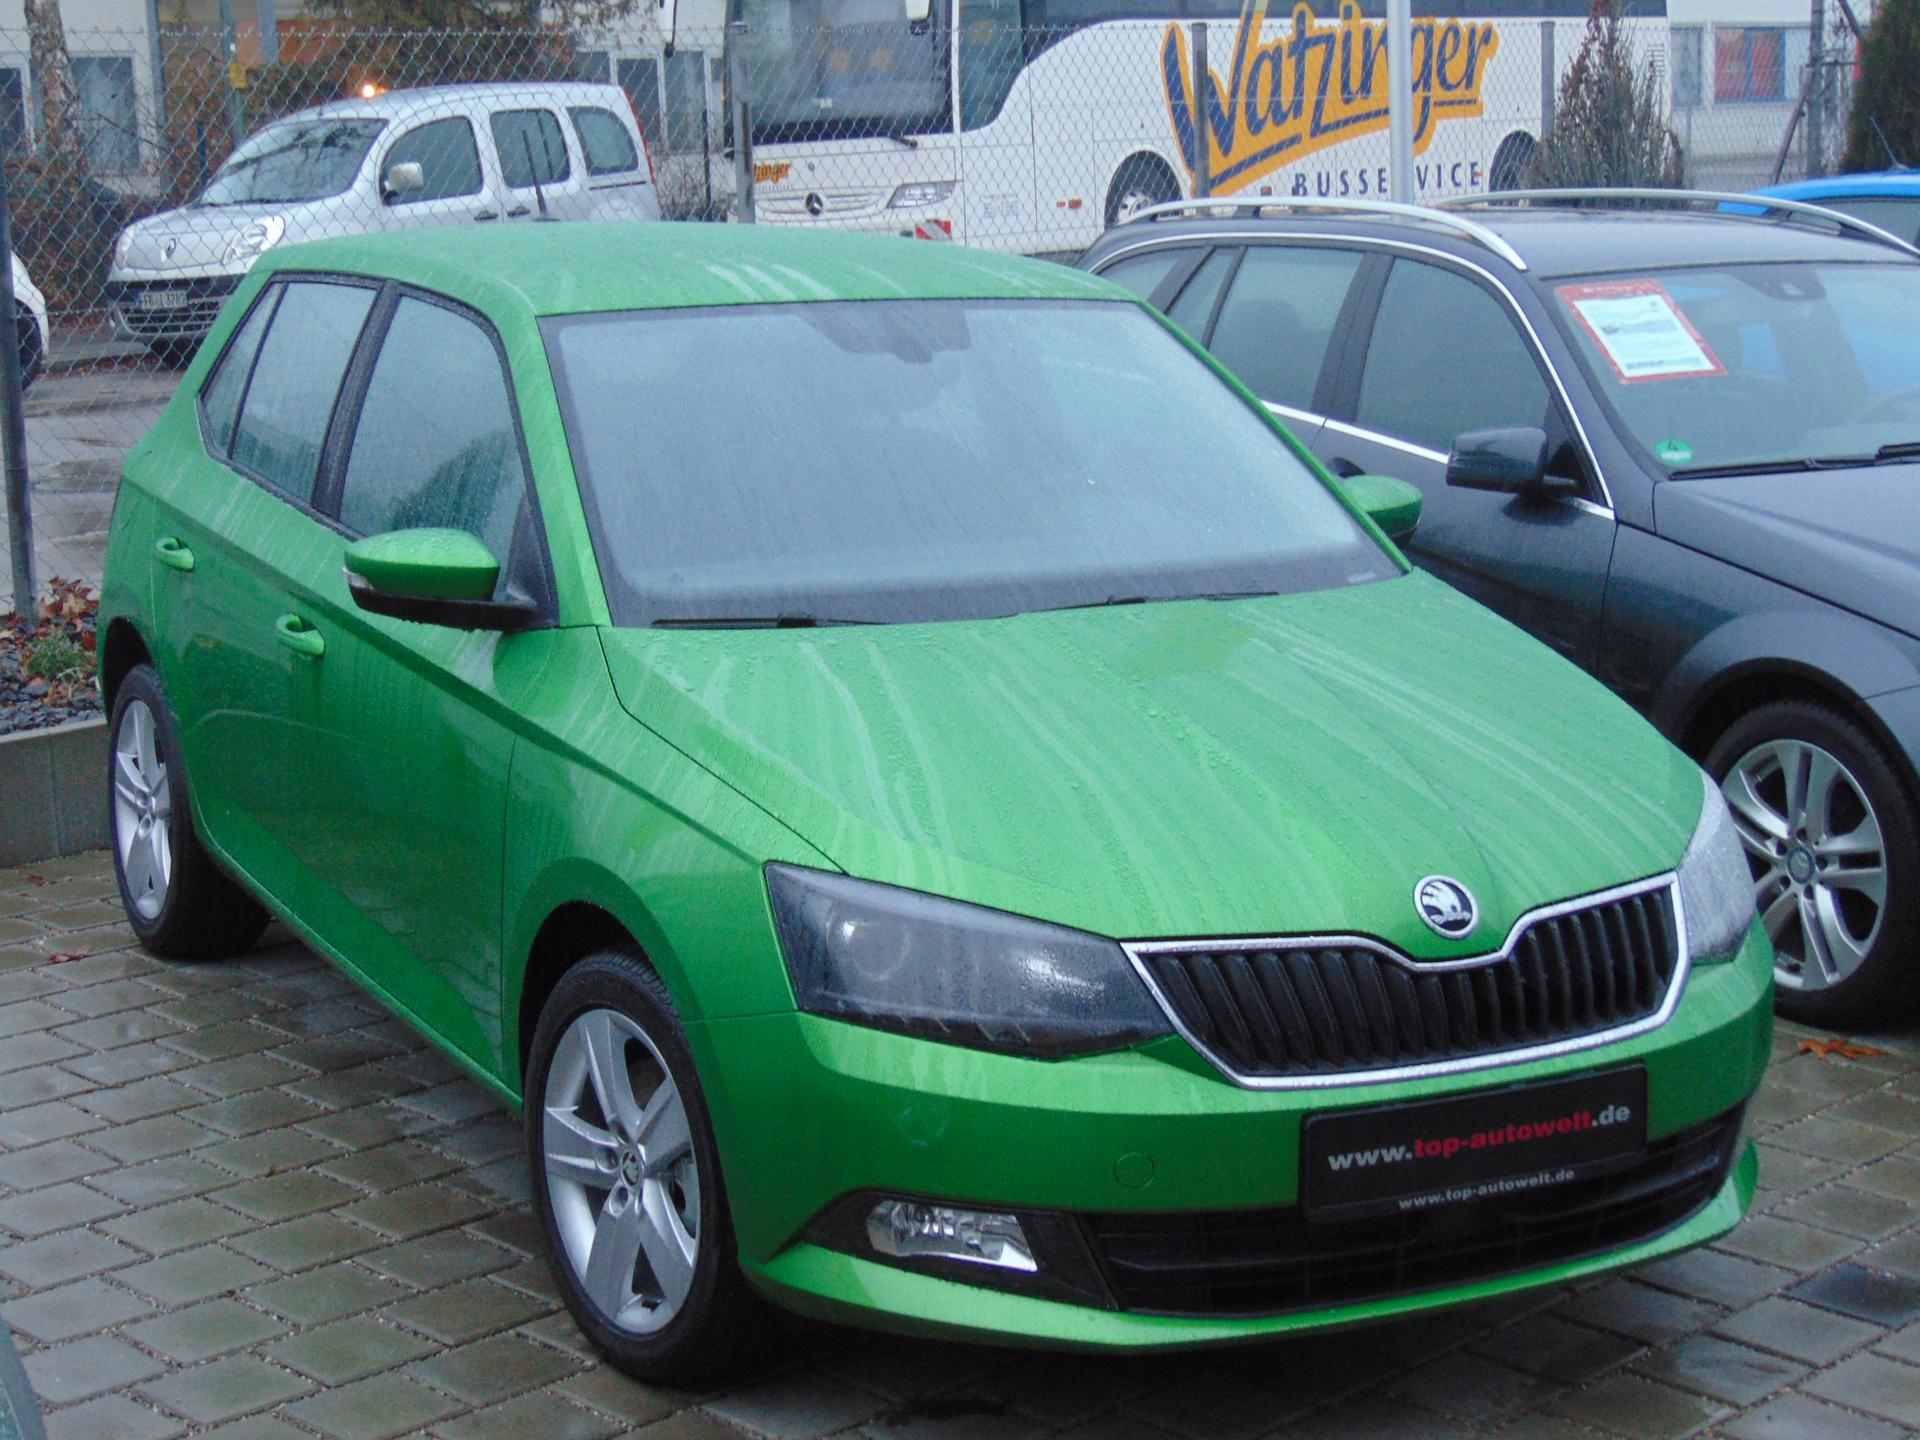 skoda fabia active 1 0 mpi 75 ps 5 j garantie radio abs esp kopf seitenairbags reimport. Black Bedroom Furniture Sets. Home Design Ideas